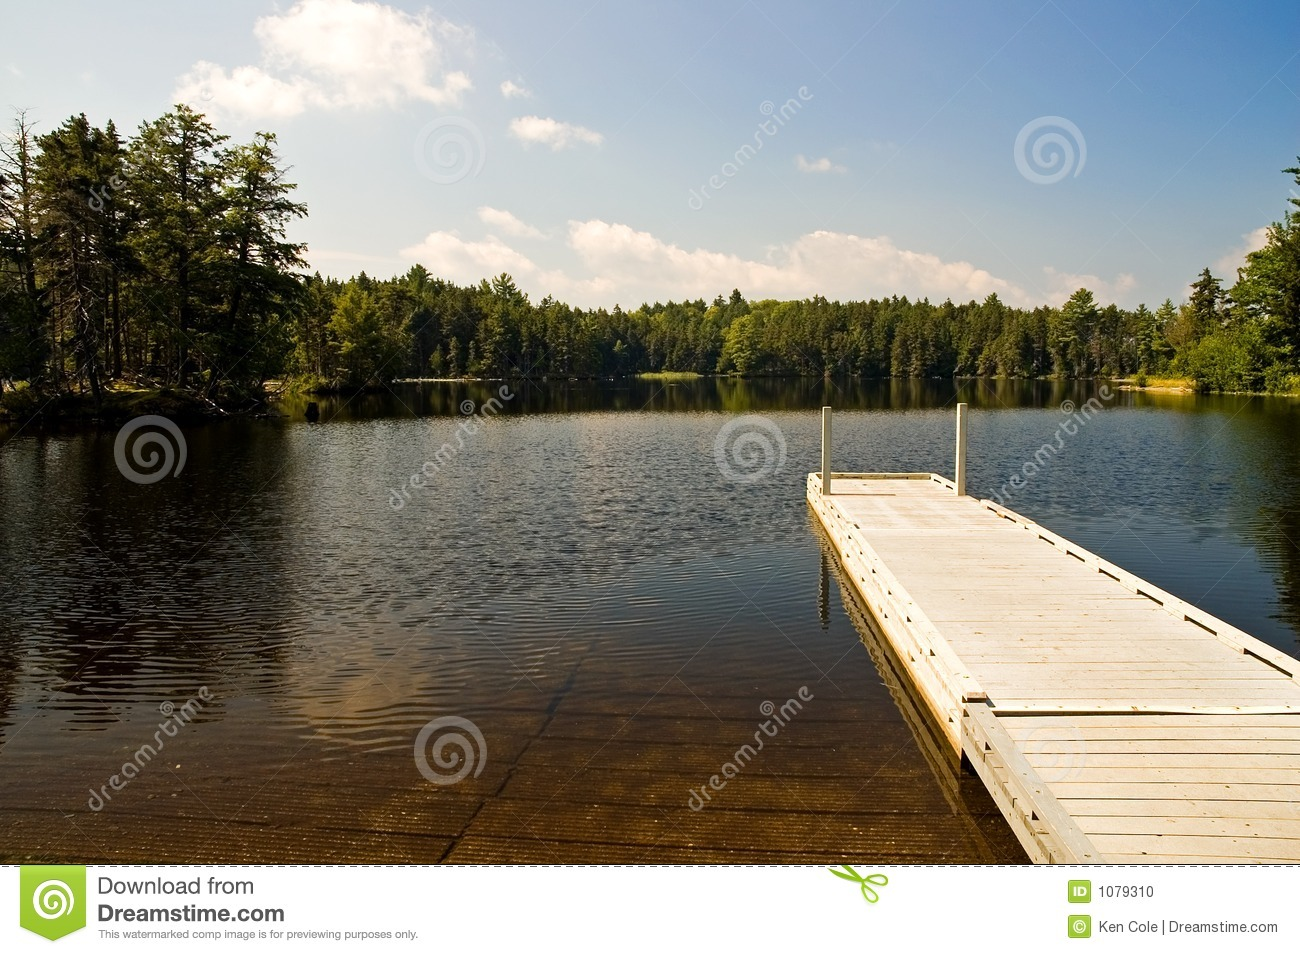 Wilderness Dock And Boat Ramp Stock Photo - Image: 1079310